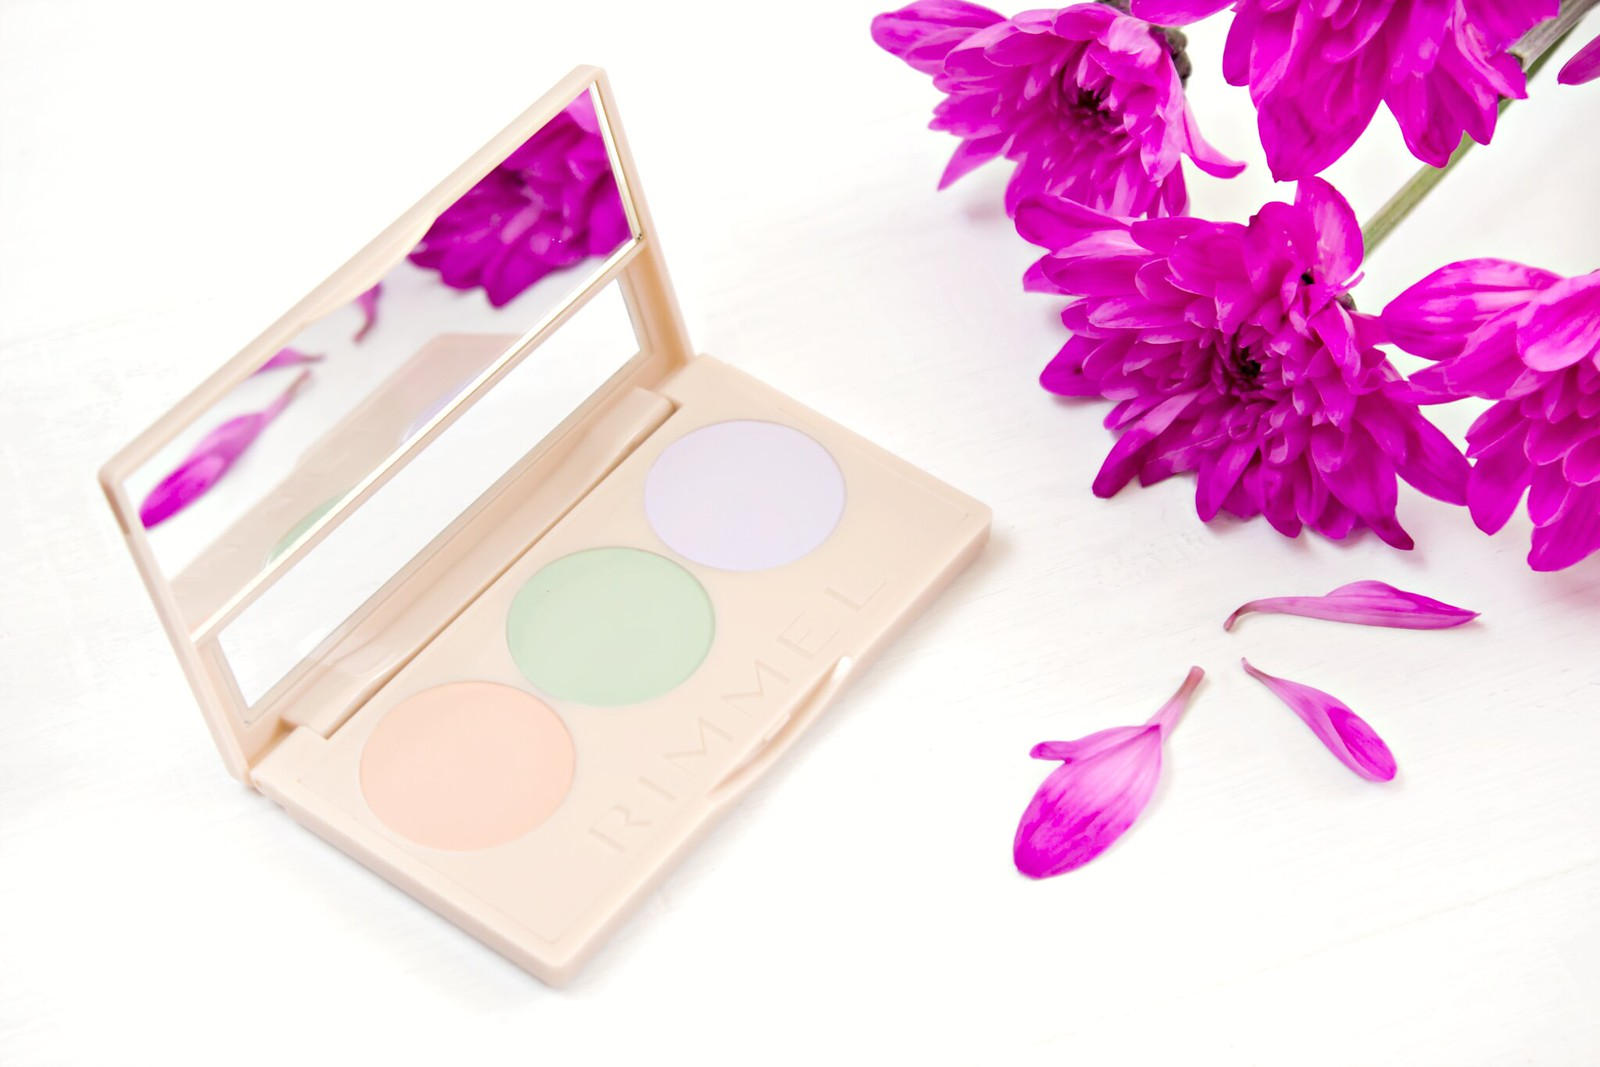 Insta Conceal and Correct Palette